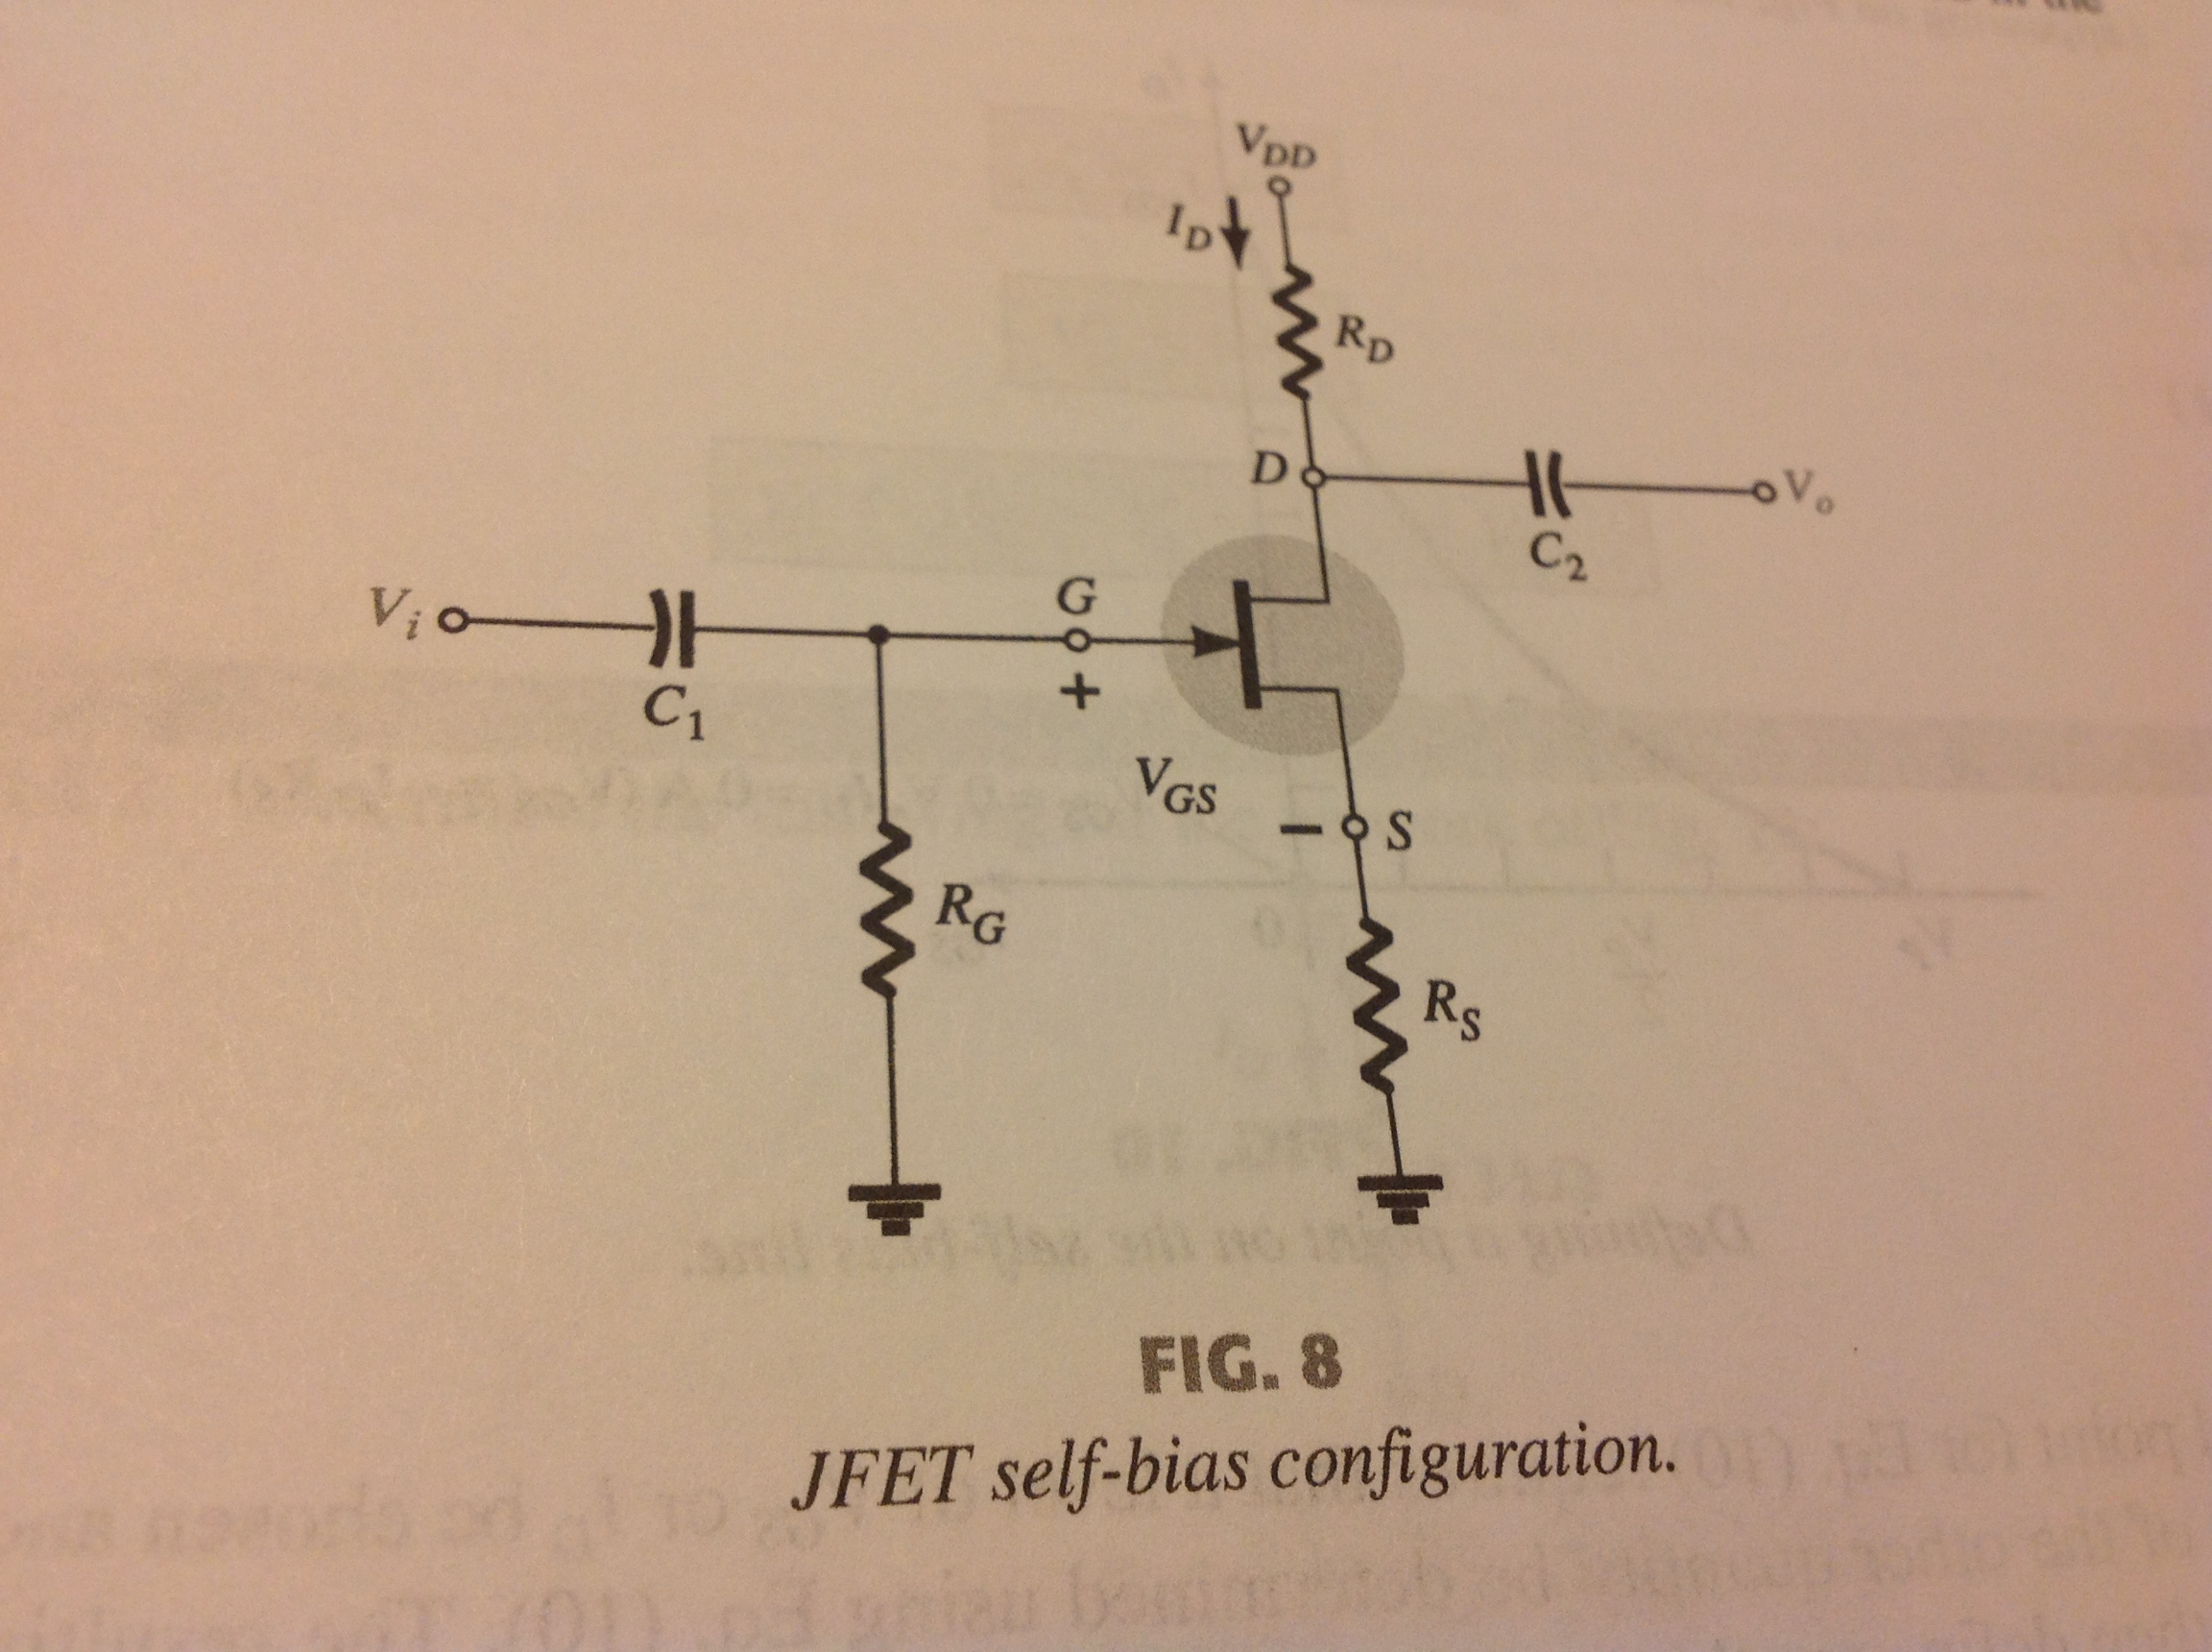 Can a JFET and a BJT coexist in the same circuit k